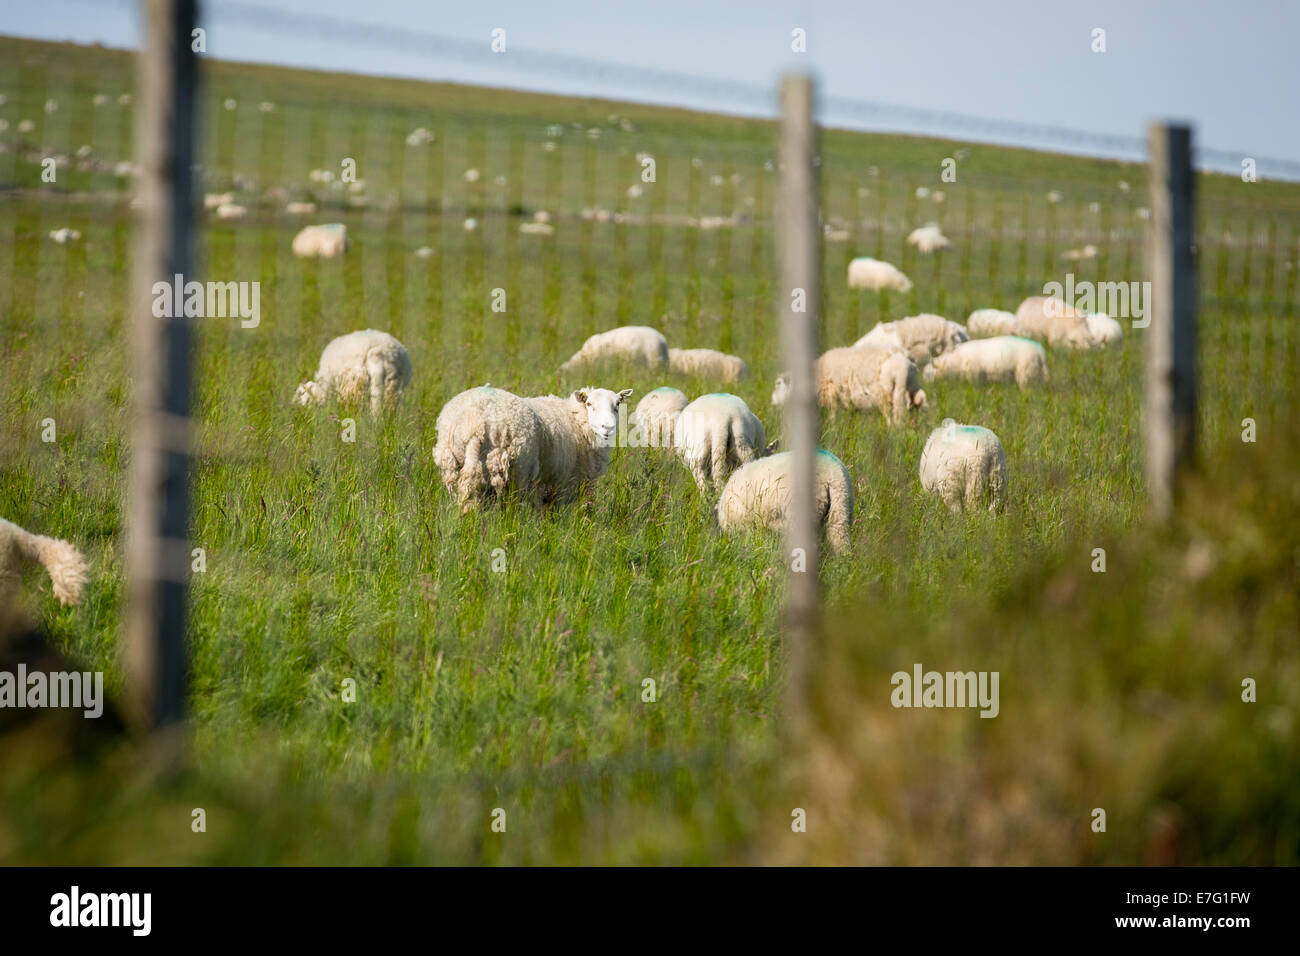 Grazing sheep seen through a fence in Pembrokeshire, Wales - Stock Image